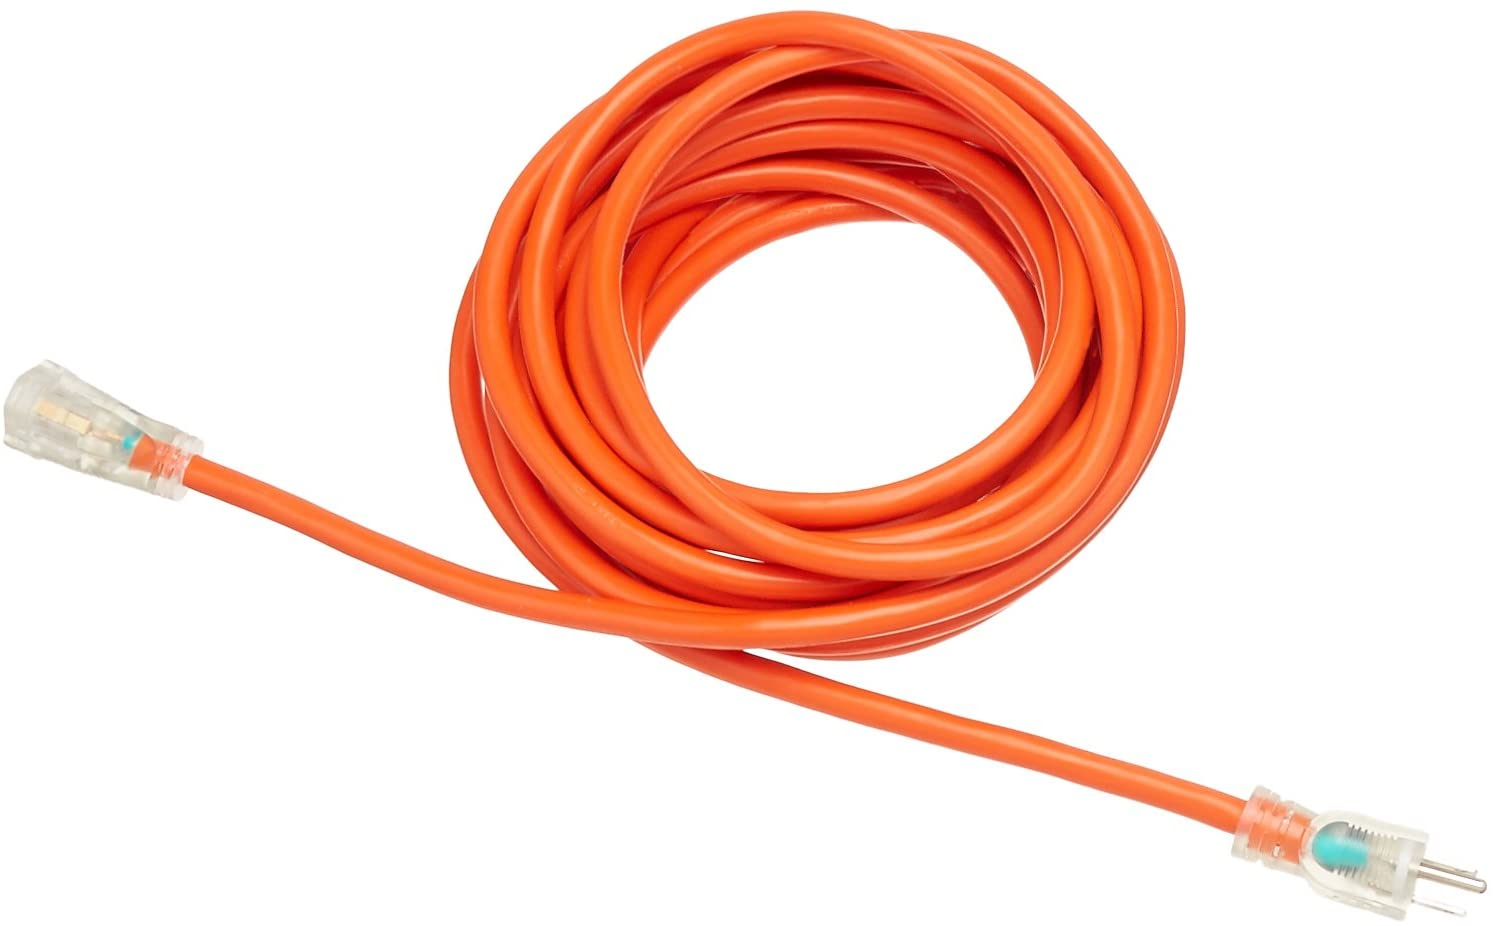 DHgateBasics 12/3 SJTW Heavy-Duty Lighted Extension Cord | Orange, 25-Foot